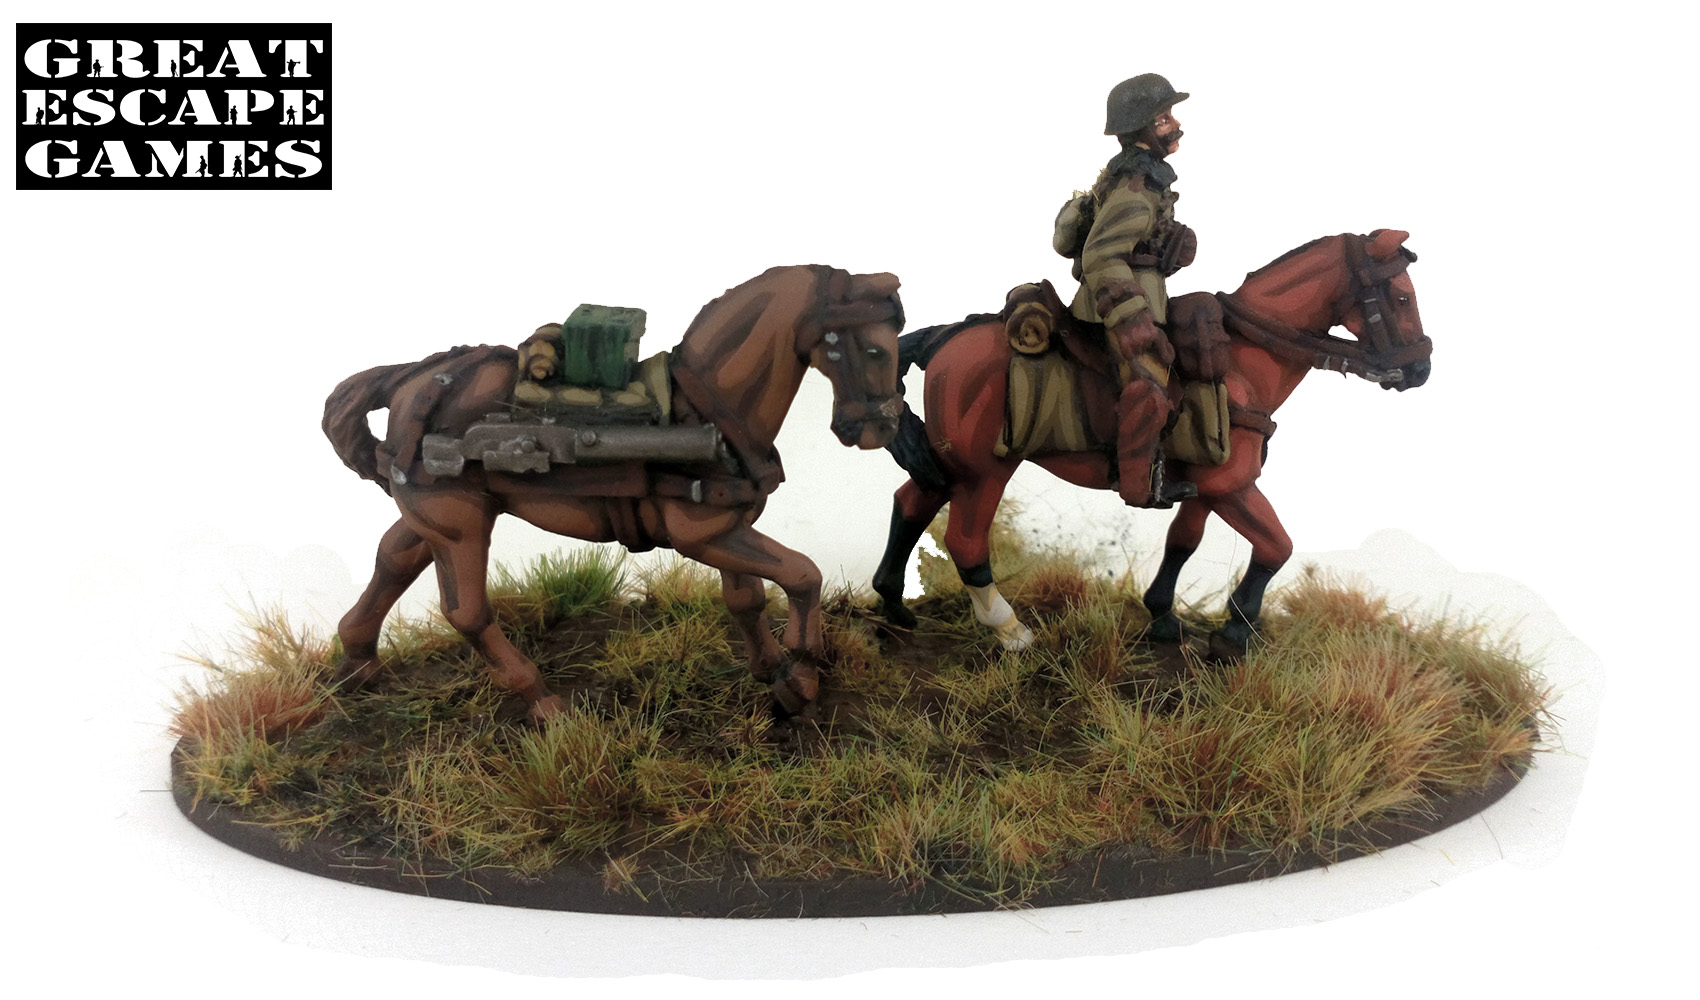 Pledge #5 Őrnagy (Major) - Hungarian Mounted plus Dismounted Huszár Troop (Great Escape Games) HUN255